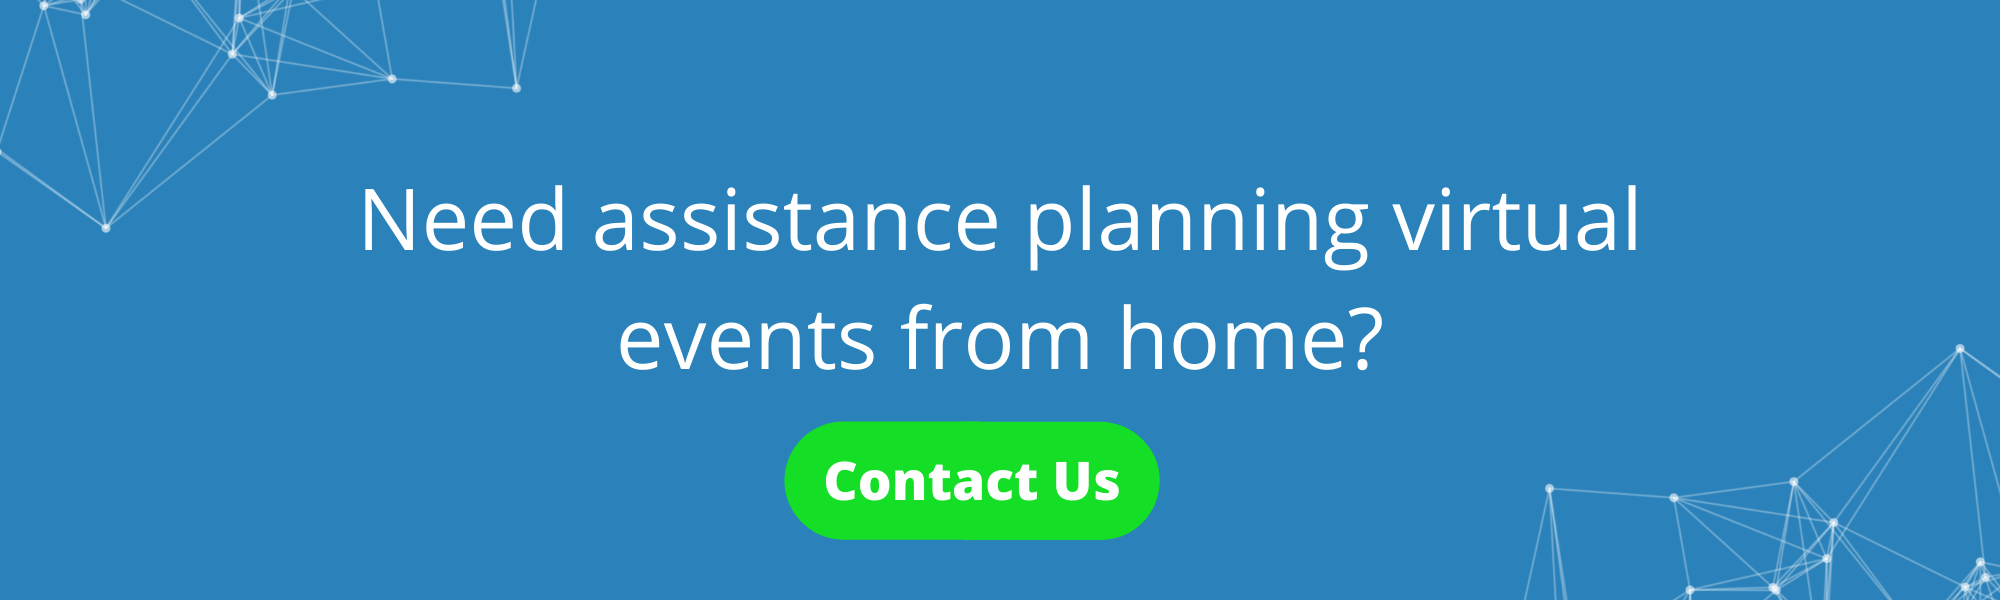 Need assistance planning virtual events from home?